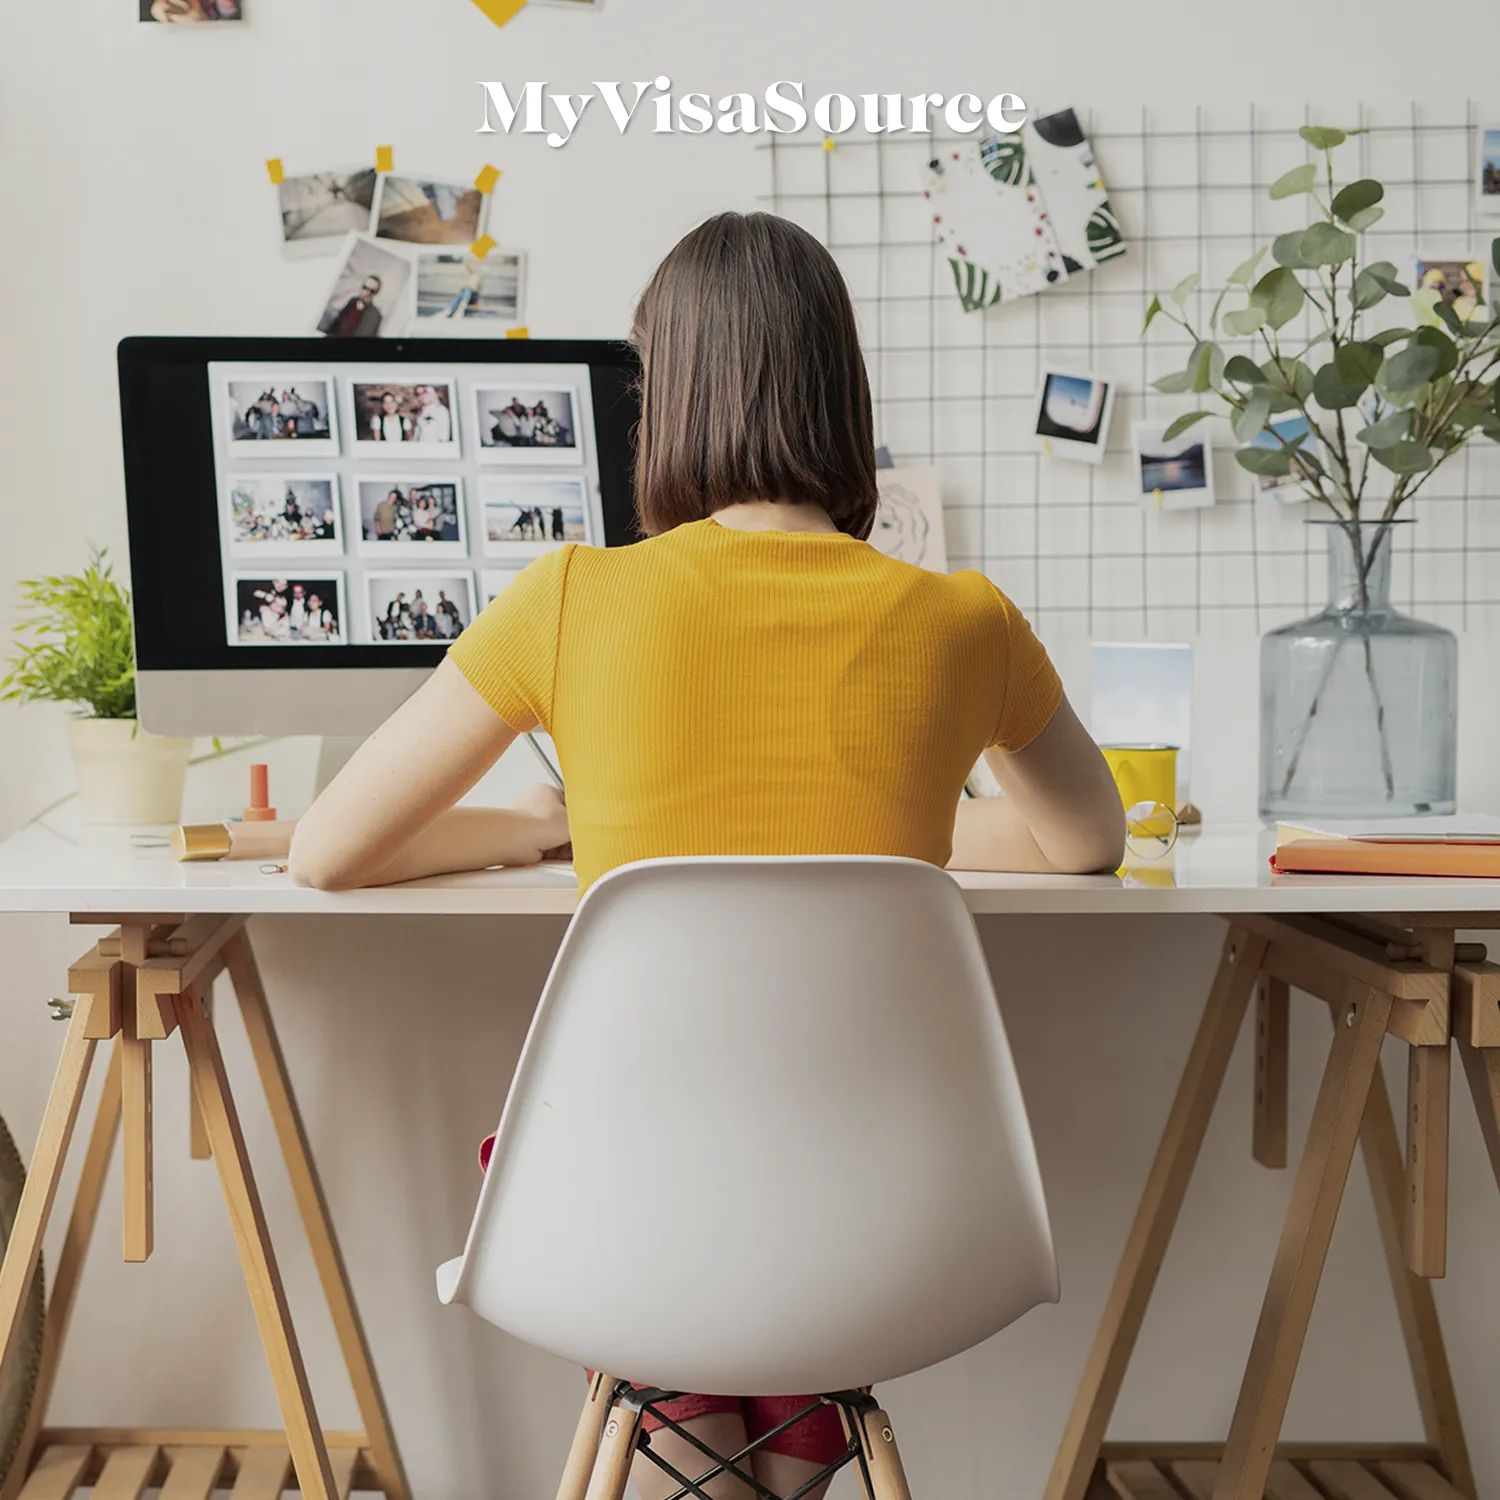 a-woman-working-at-her-desk-by-my-visa-source